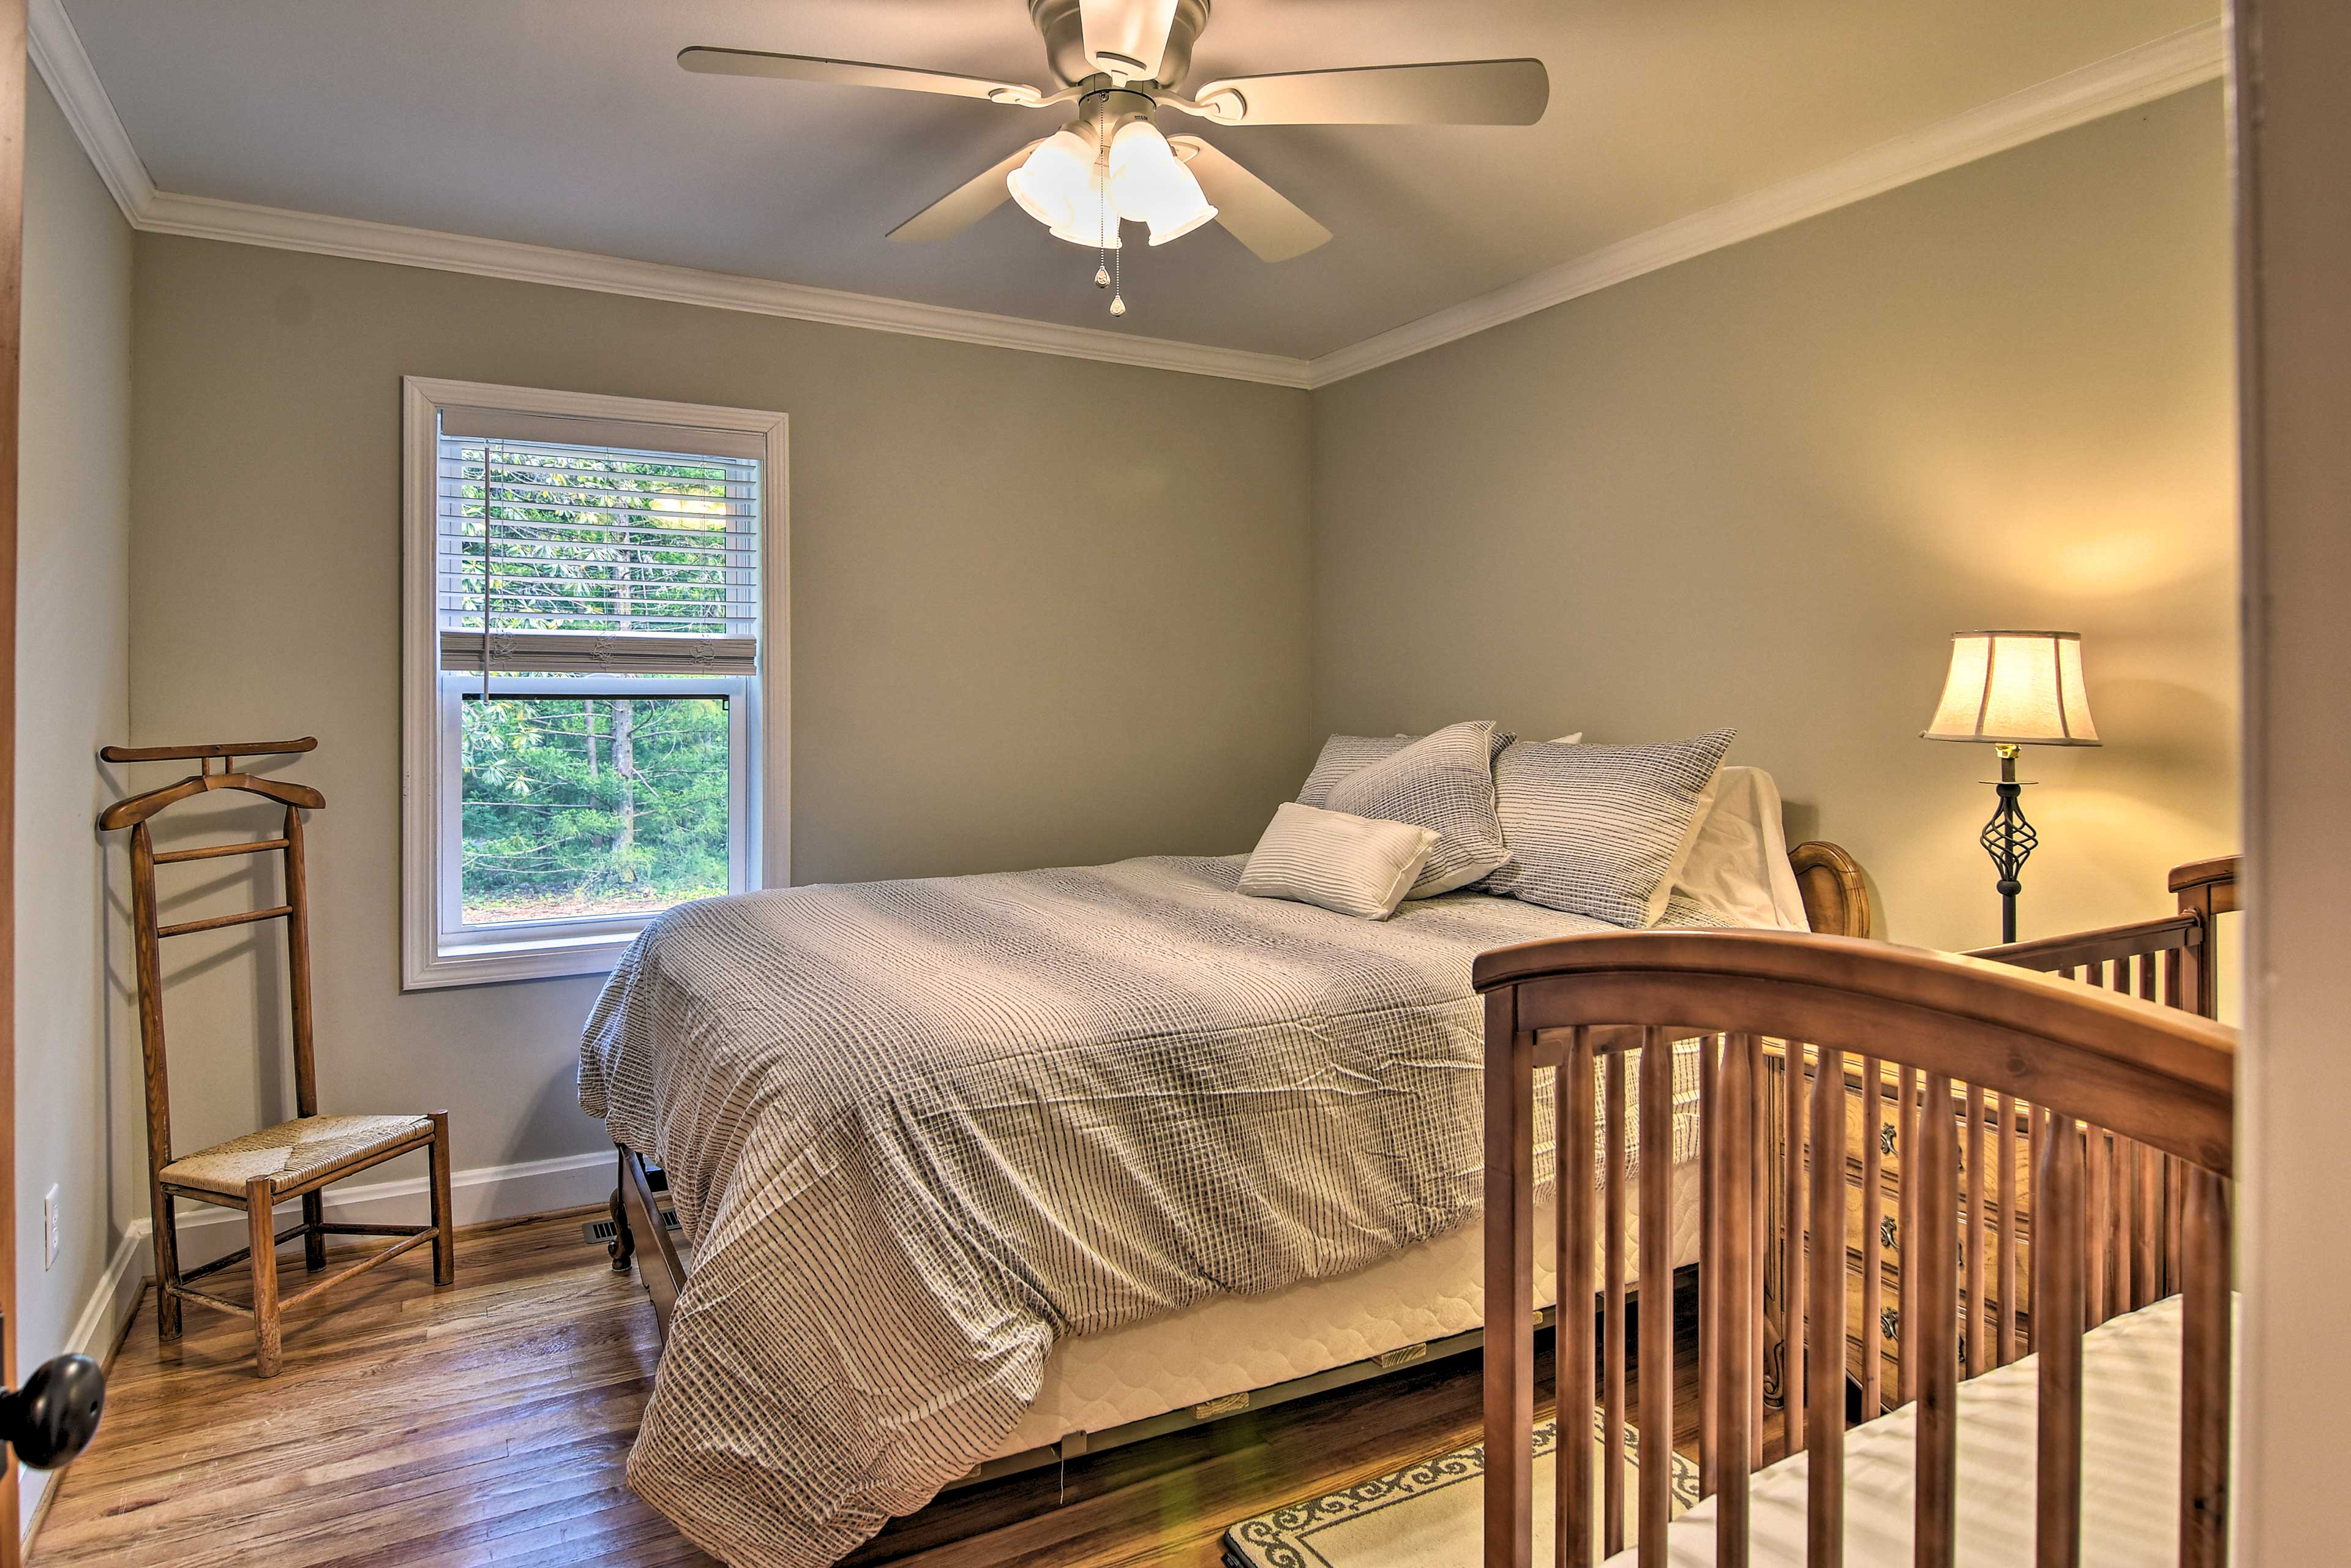 A crib is provided for your use in this room!